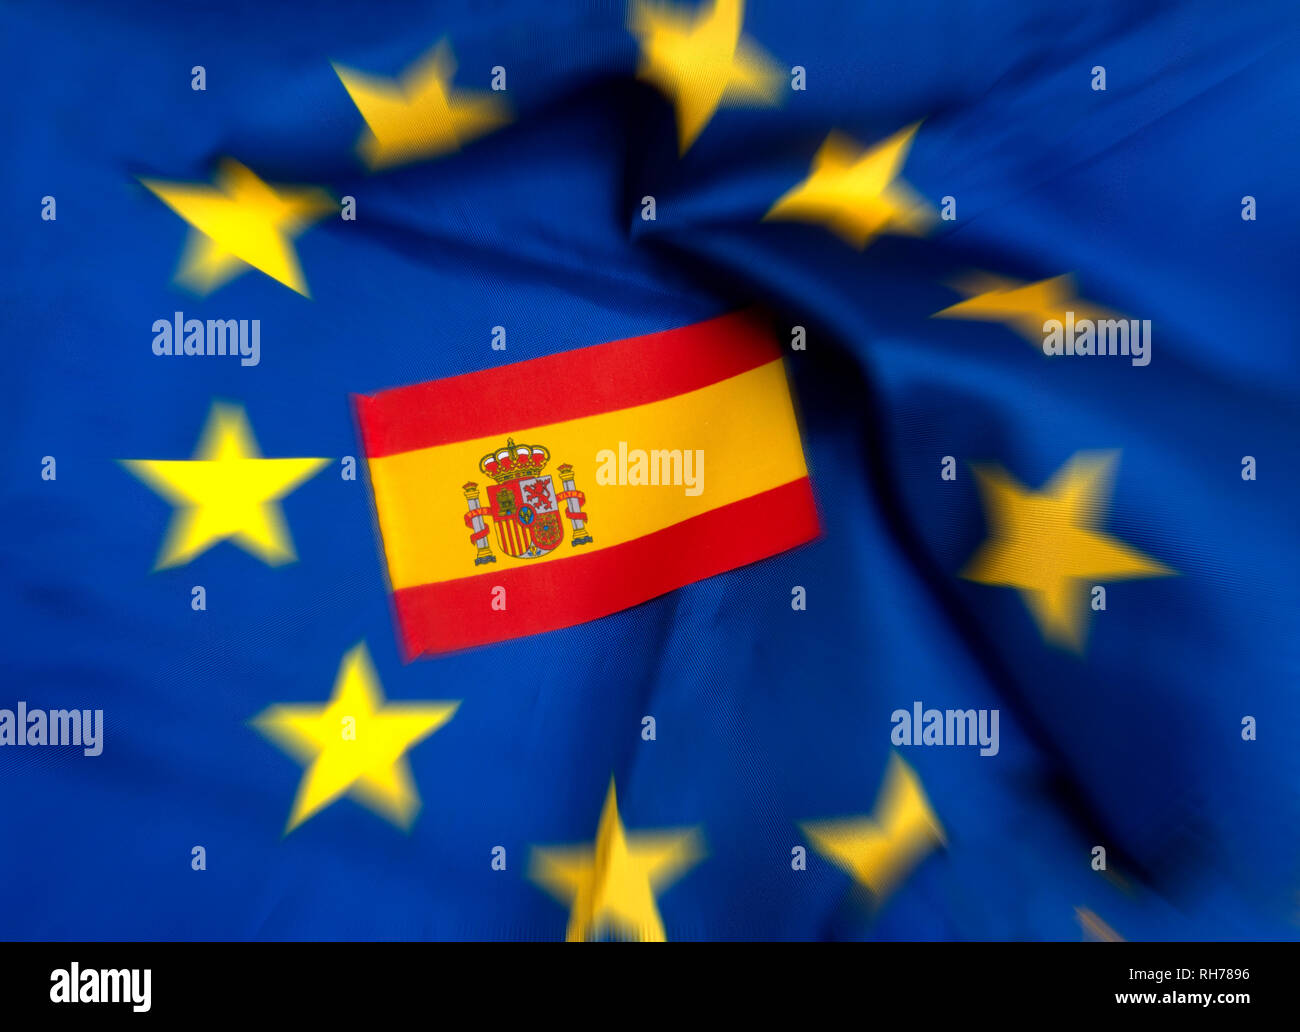 Flags of European Union and Spain - Stock Image